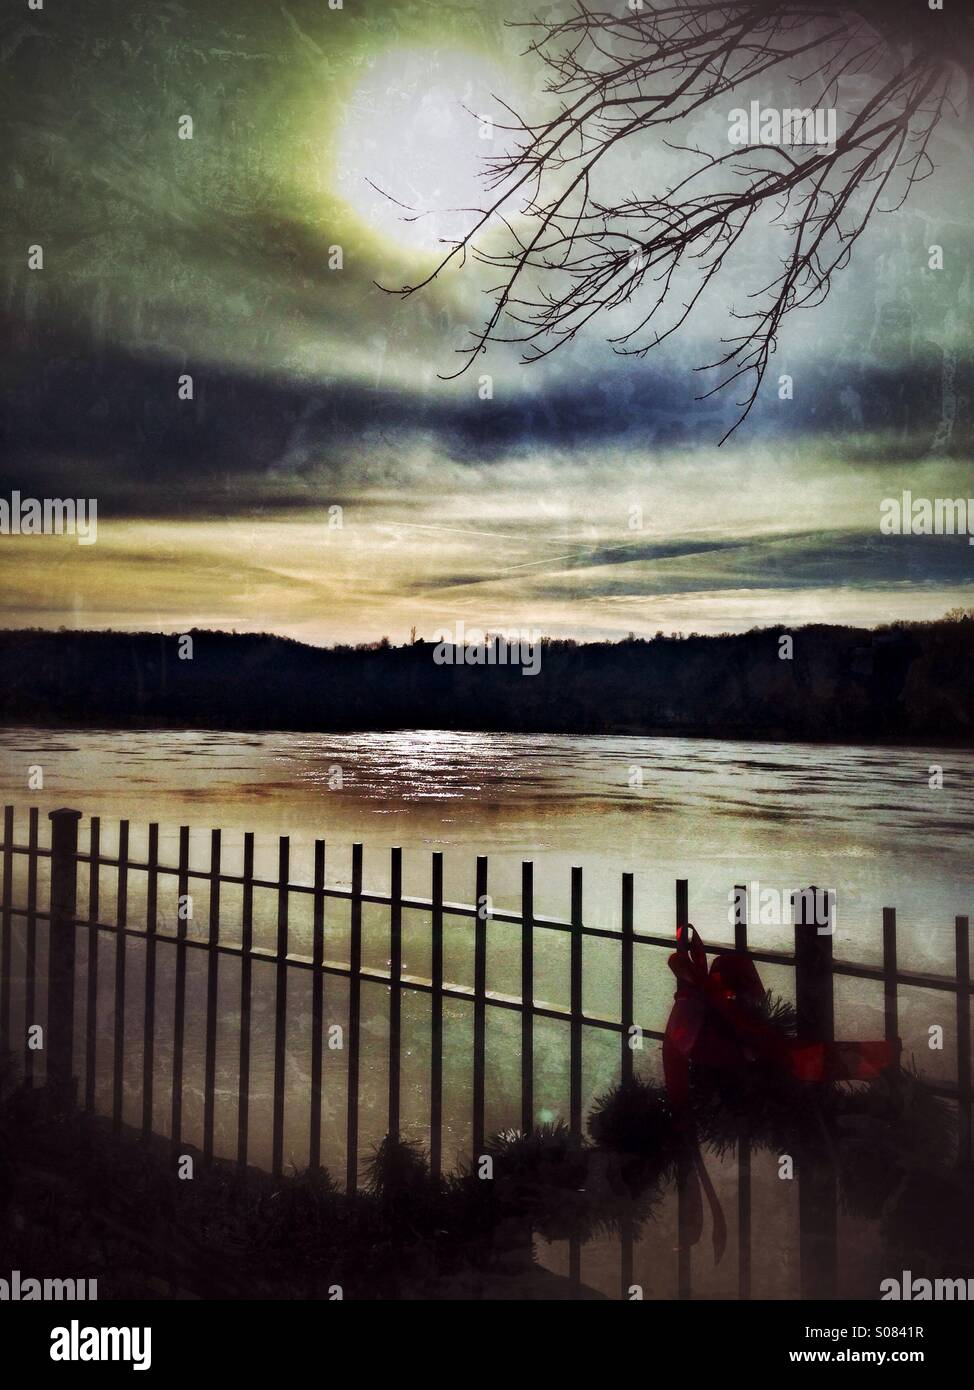 A fence with garland and a red bow while the sun shines on the Ohio River. - Stock Image